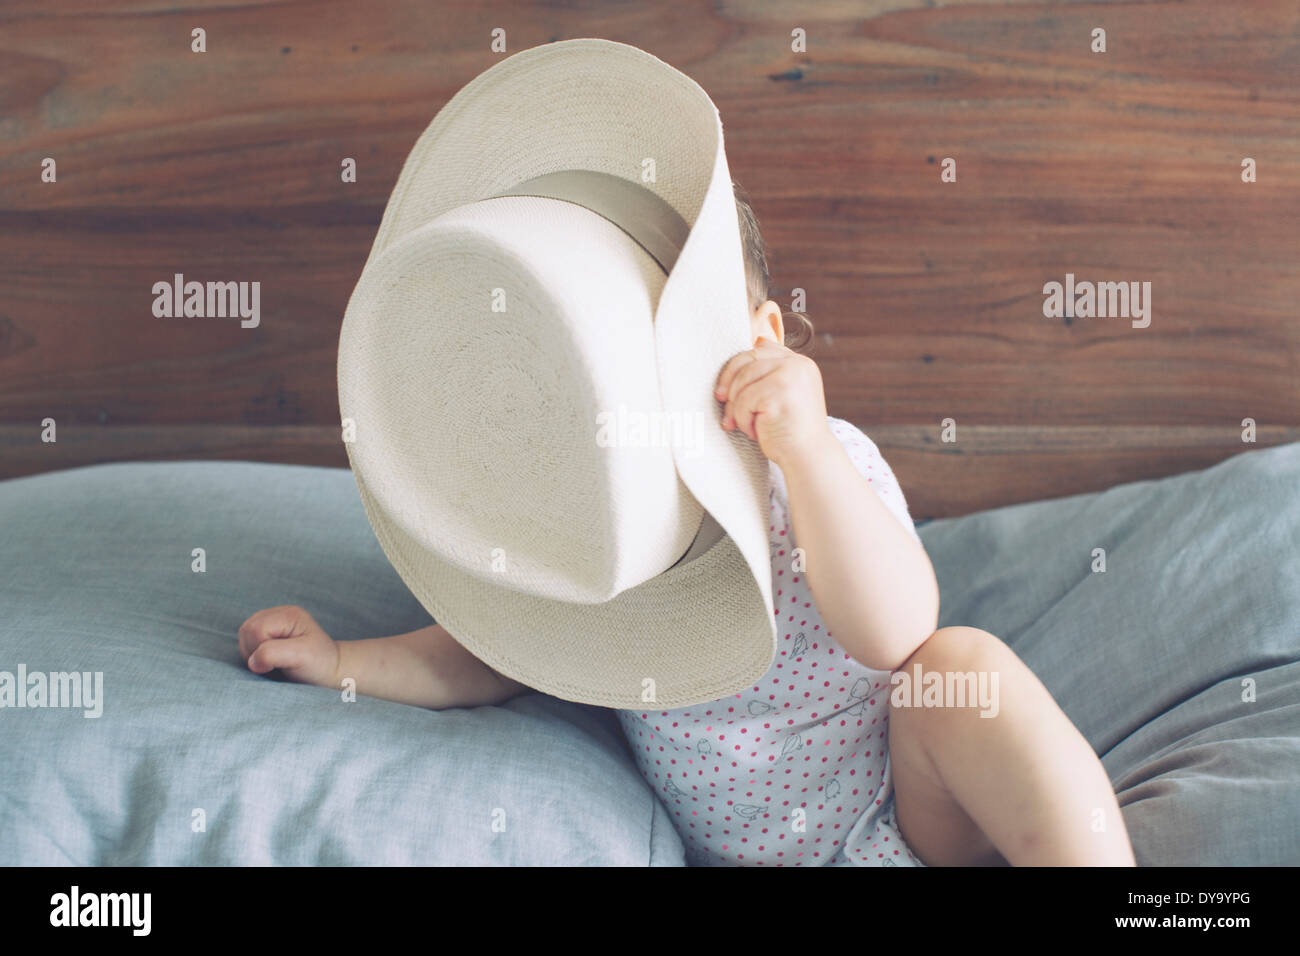 Baby with face obscured by oversized hat - Stock Image